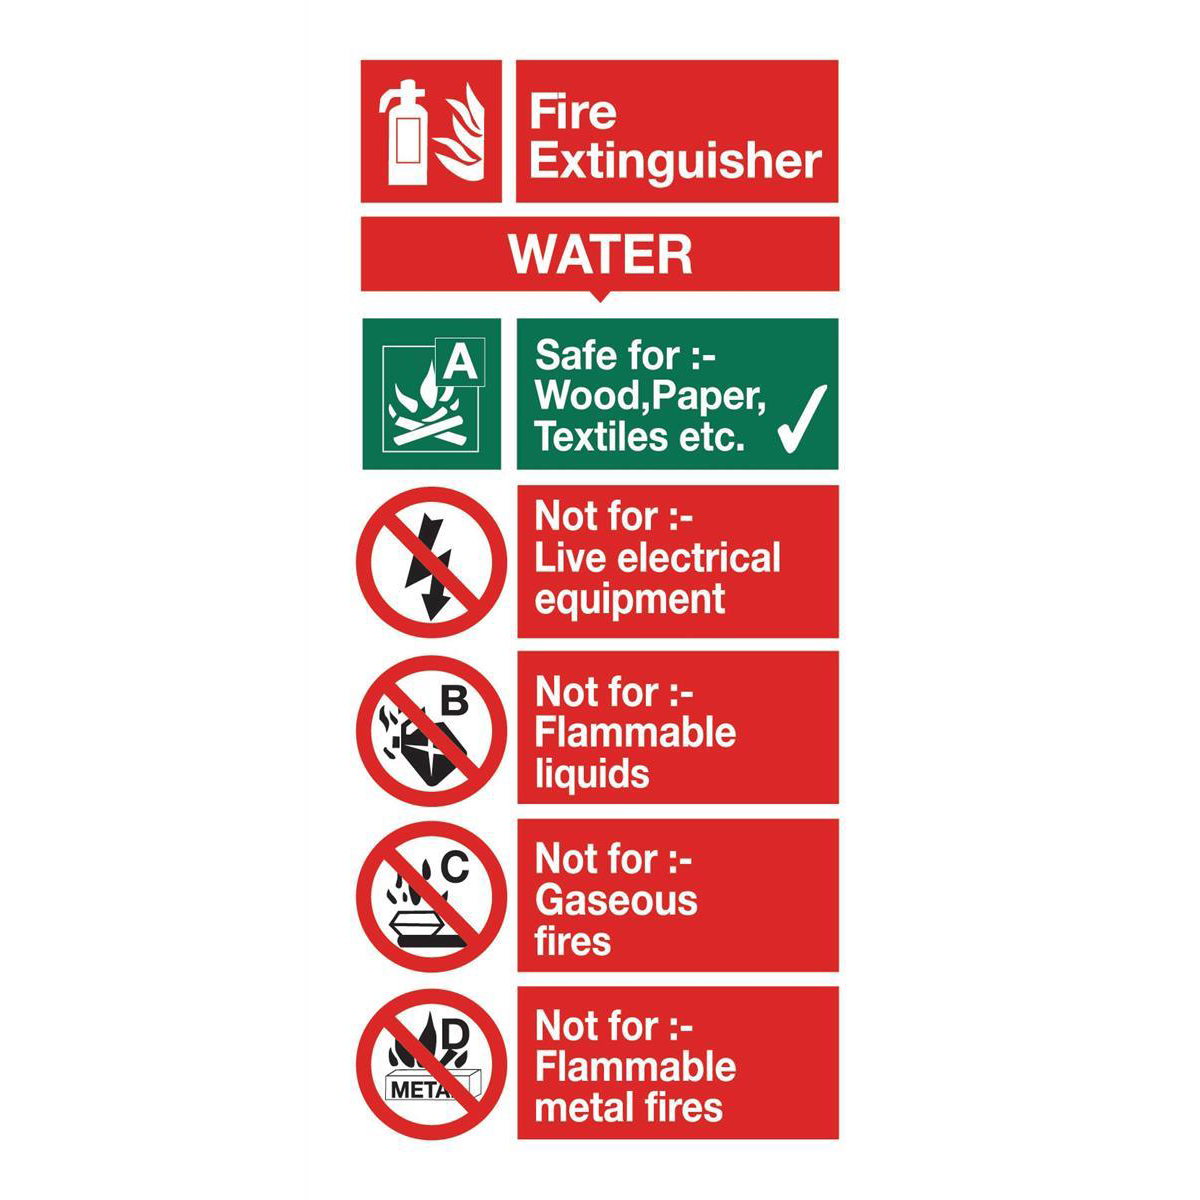 Fire Stewart Superior Water Fire Extinguisher Safety Sign W100xH200mm Self-adhesive Vinyl Ref FF091SAV